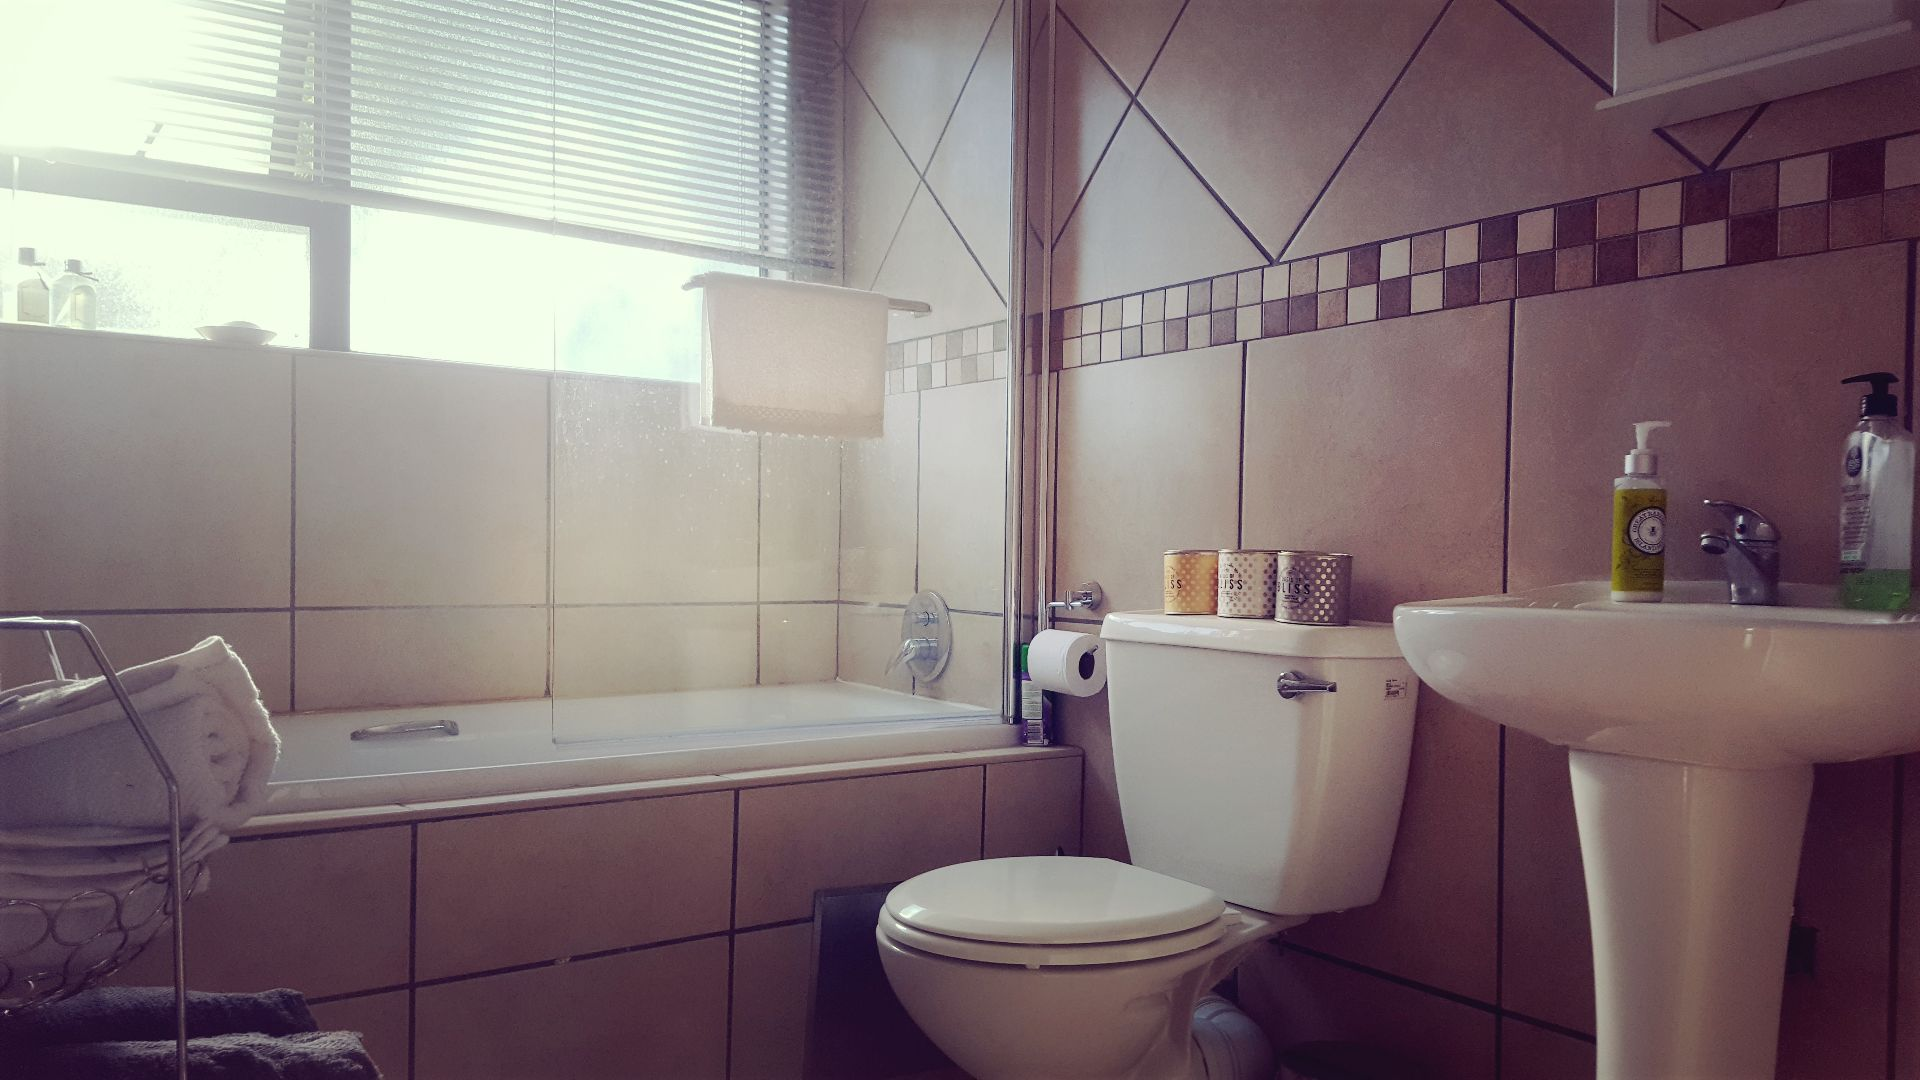 Potchefstroom Central property for sale. Ref No: 13543485. Picture no 11